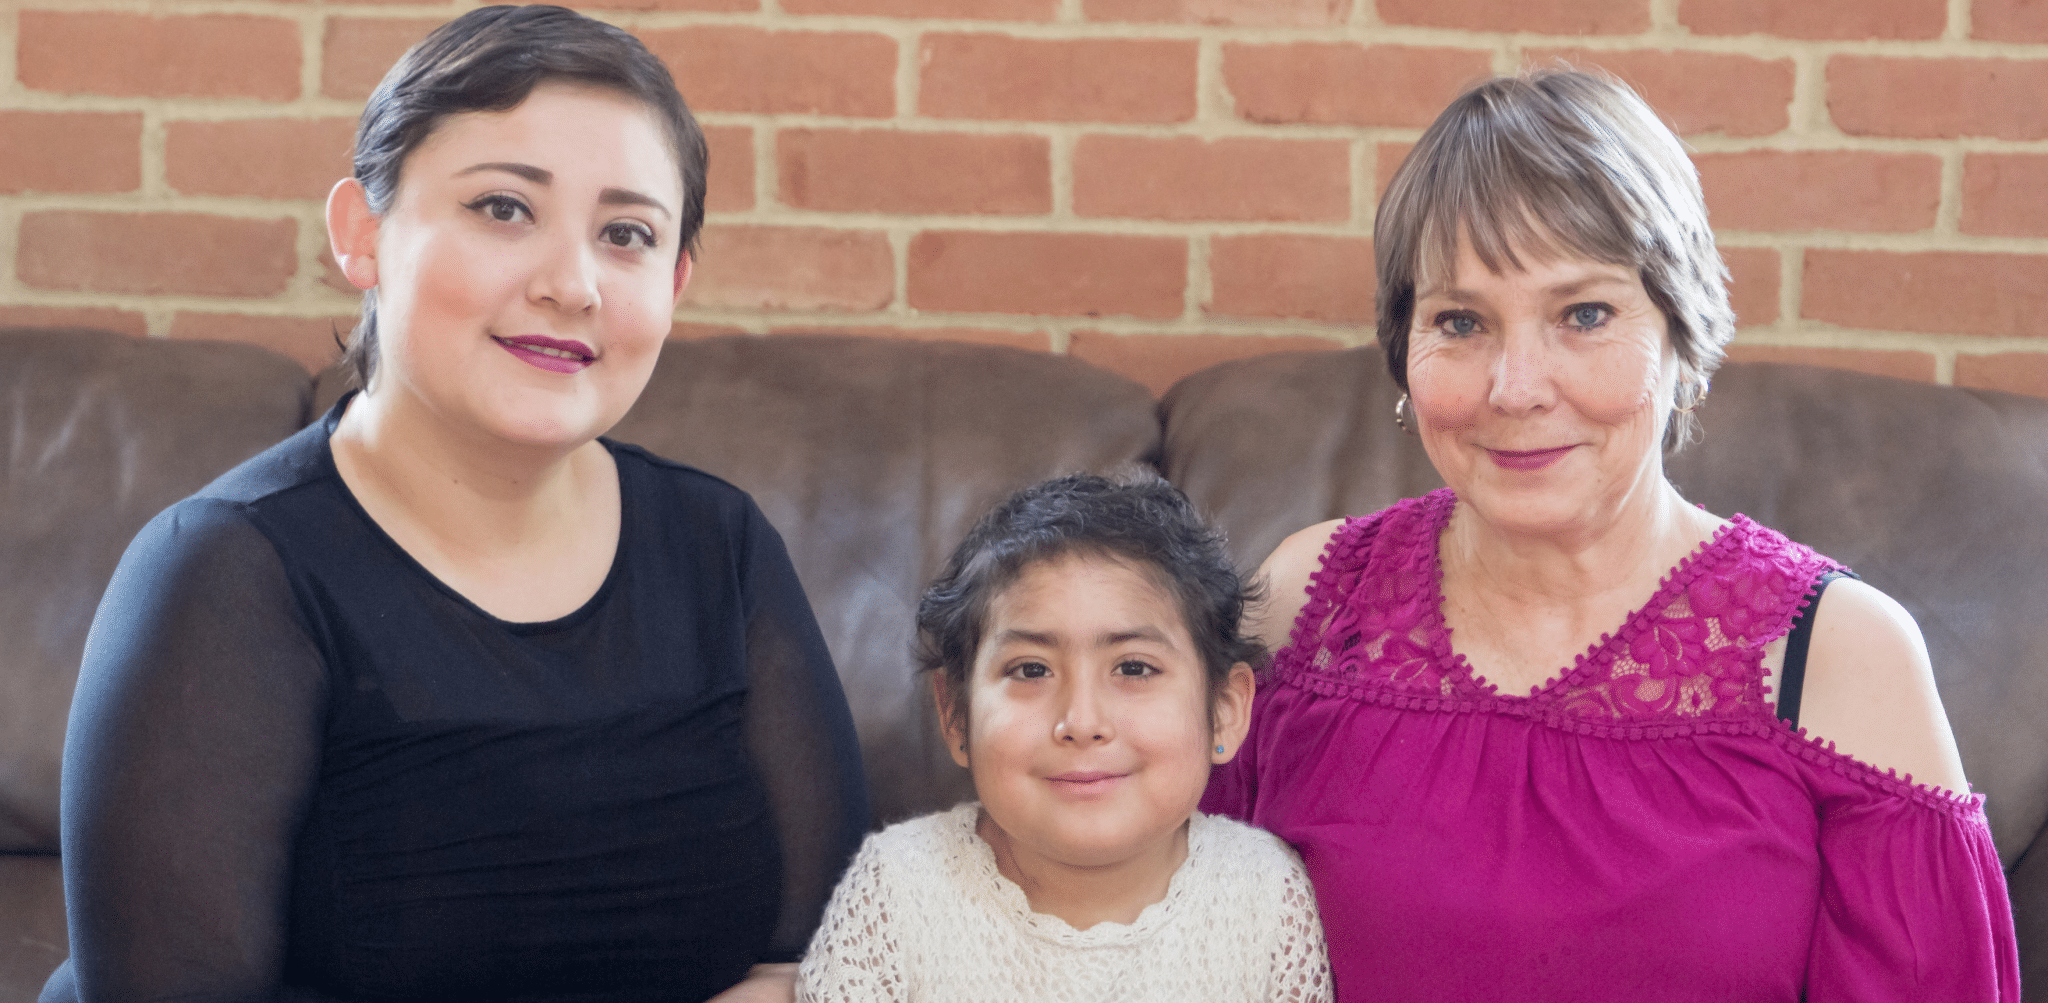 Mother, grandmother and daughter smiling on couch